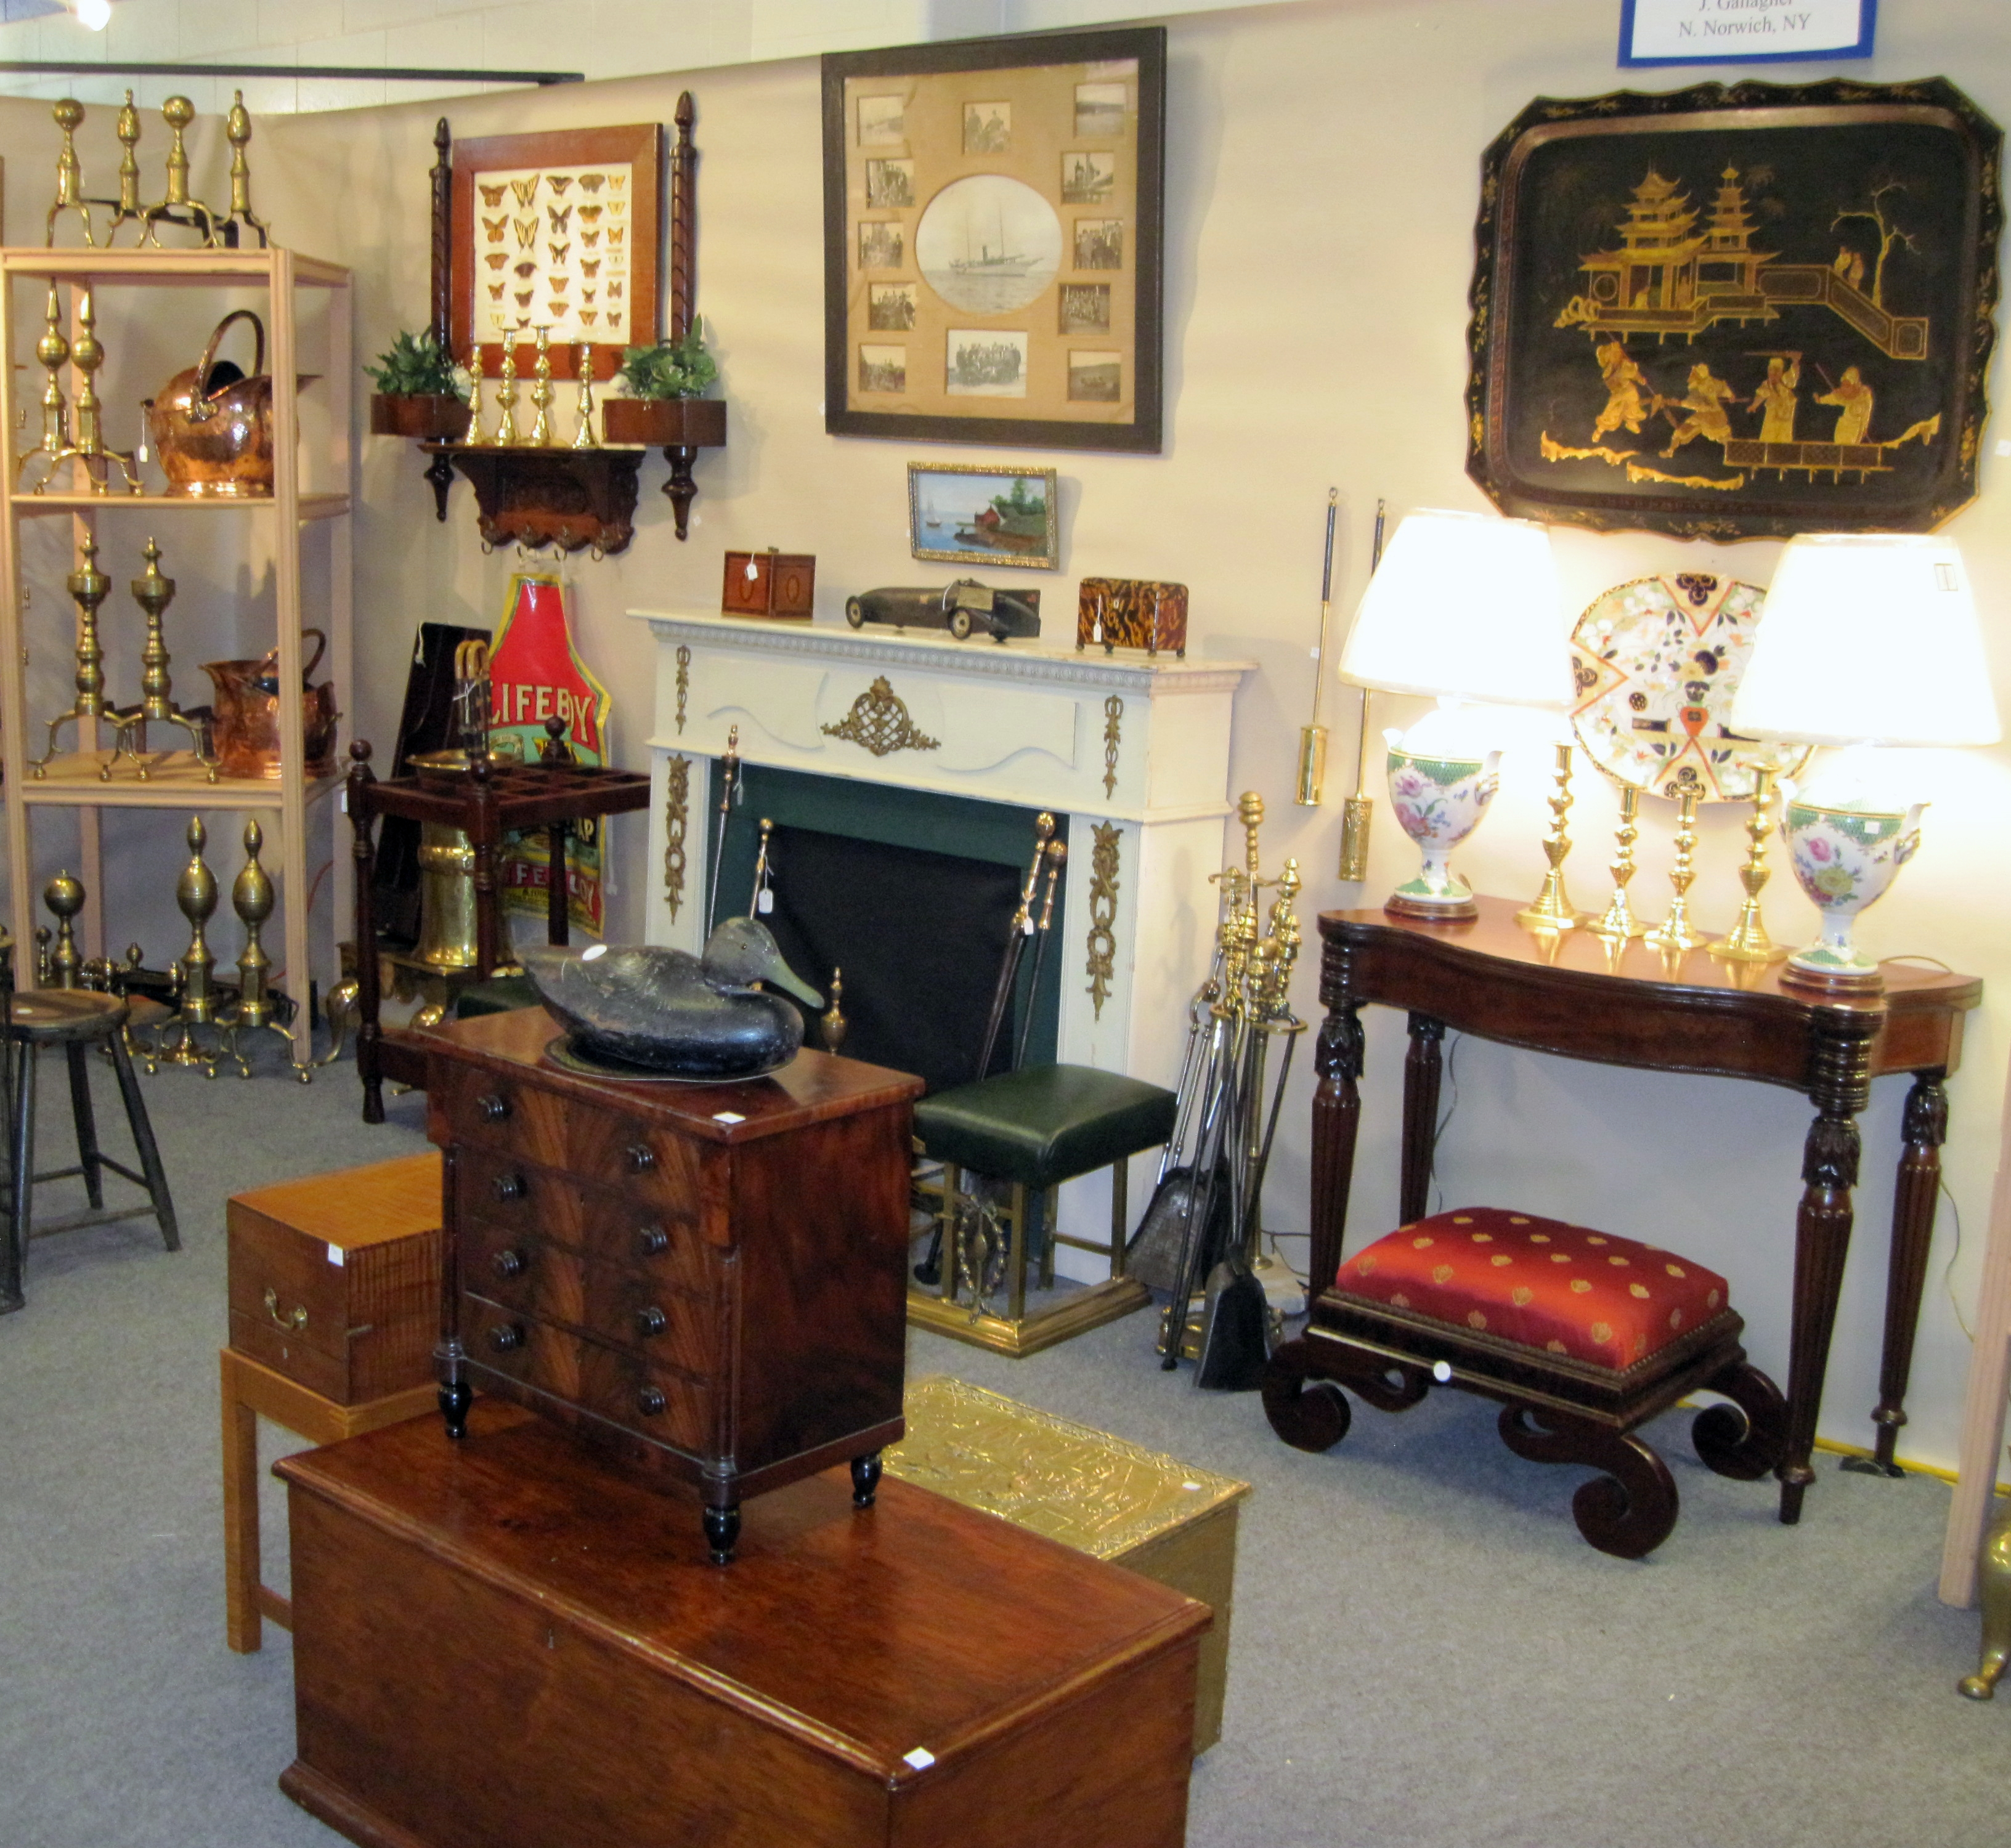 J  Gallagher  North Norwich  N Y. Sheffield Antiques Show Concludes No  68